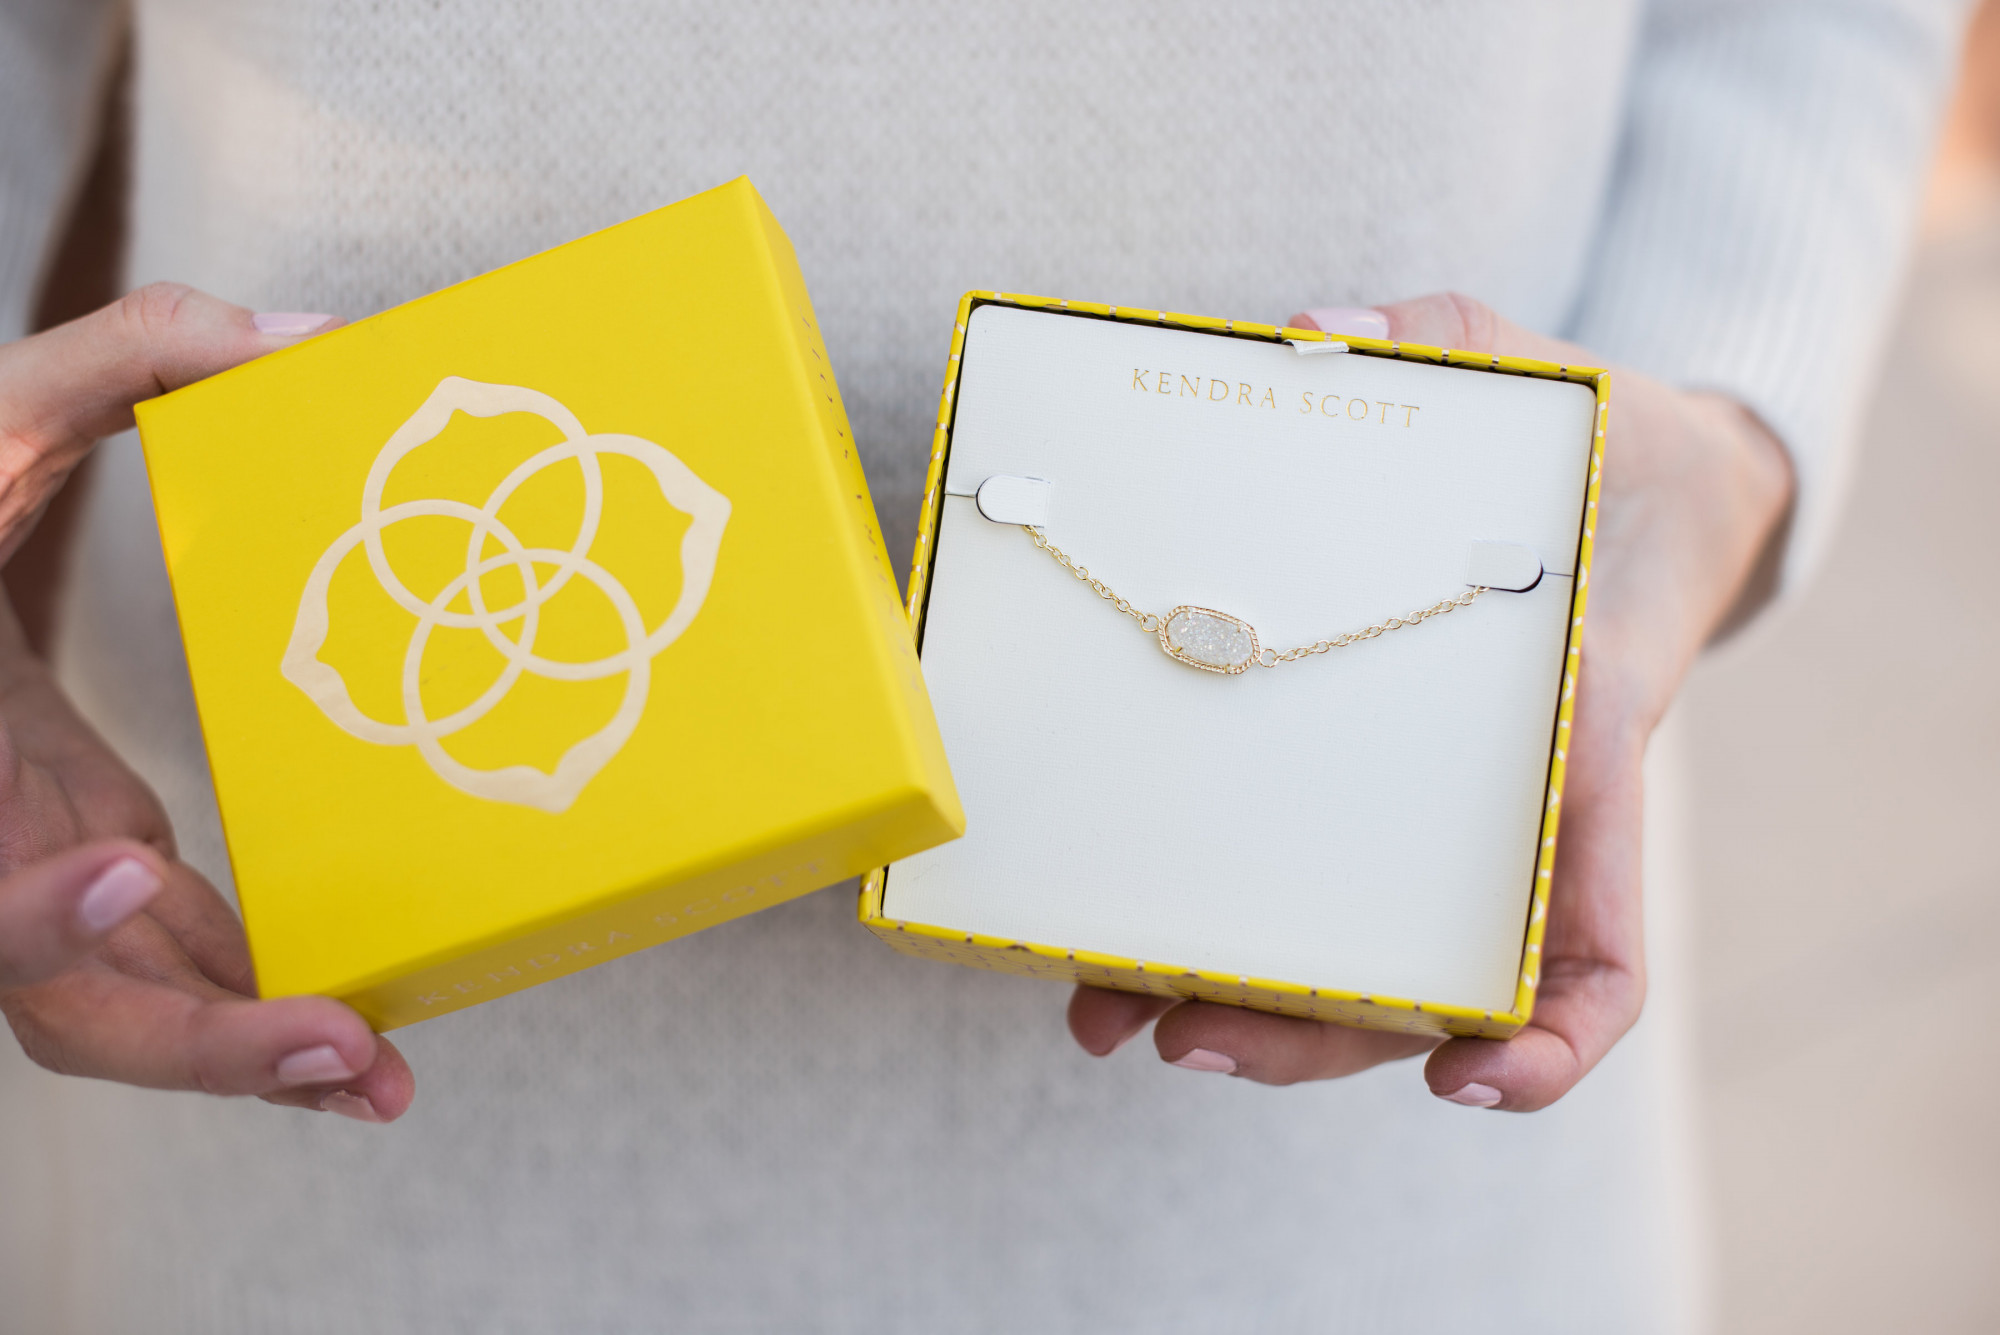 kendra scott jewelry gift